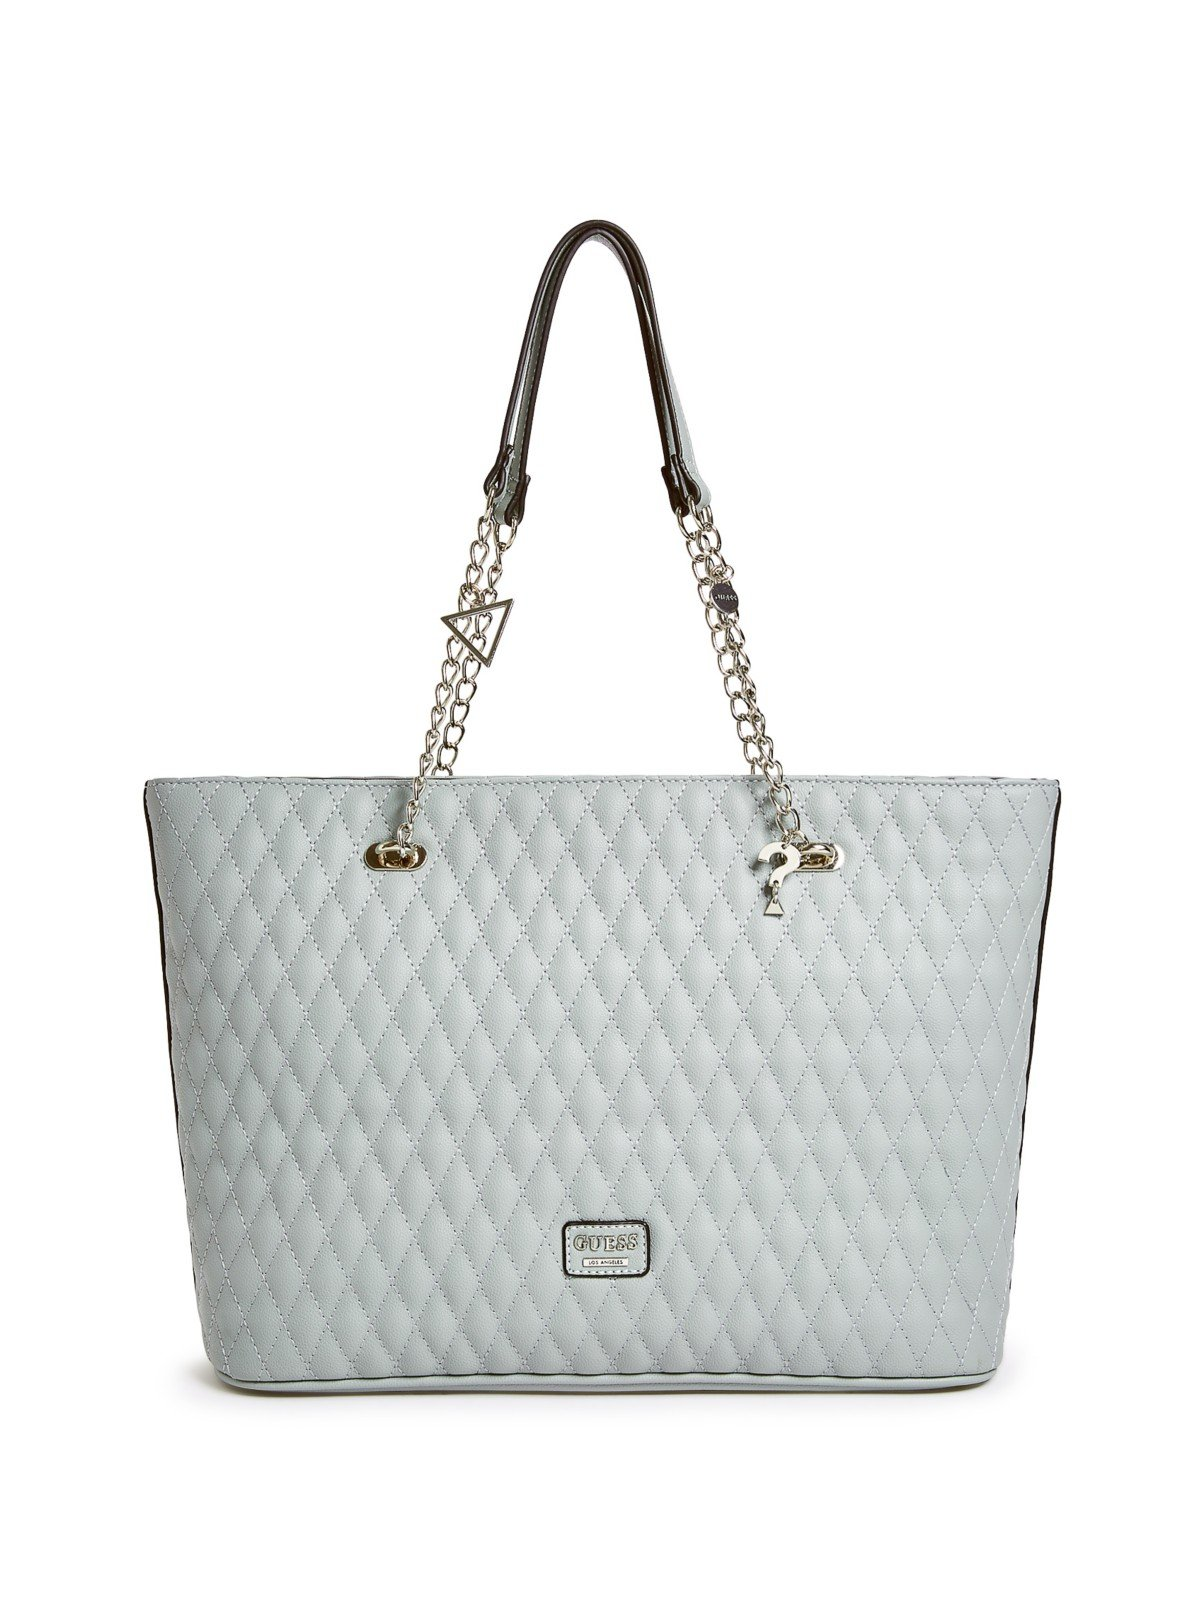 GUESS Factory Women's Larson Quilted Top Chain Handle Tote